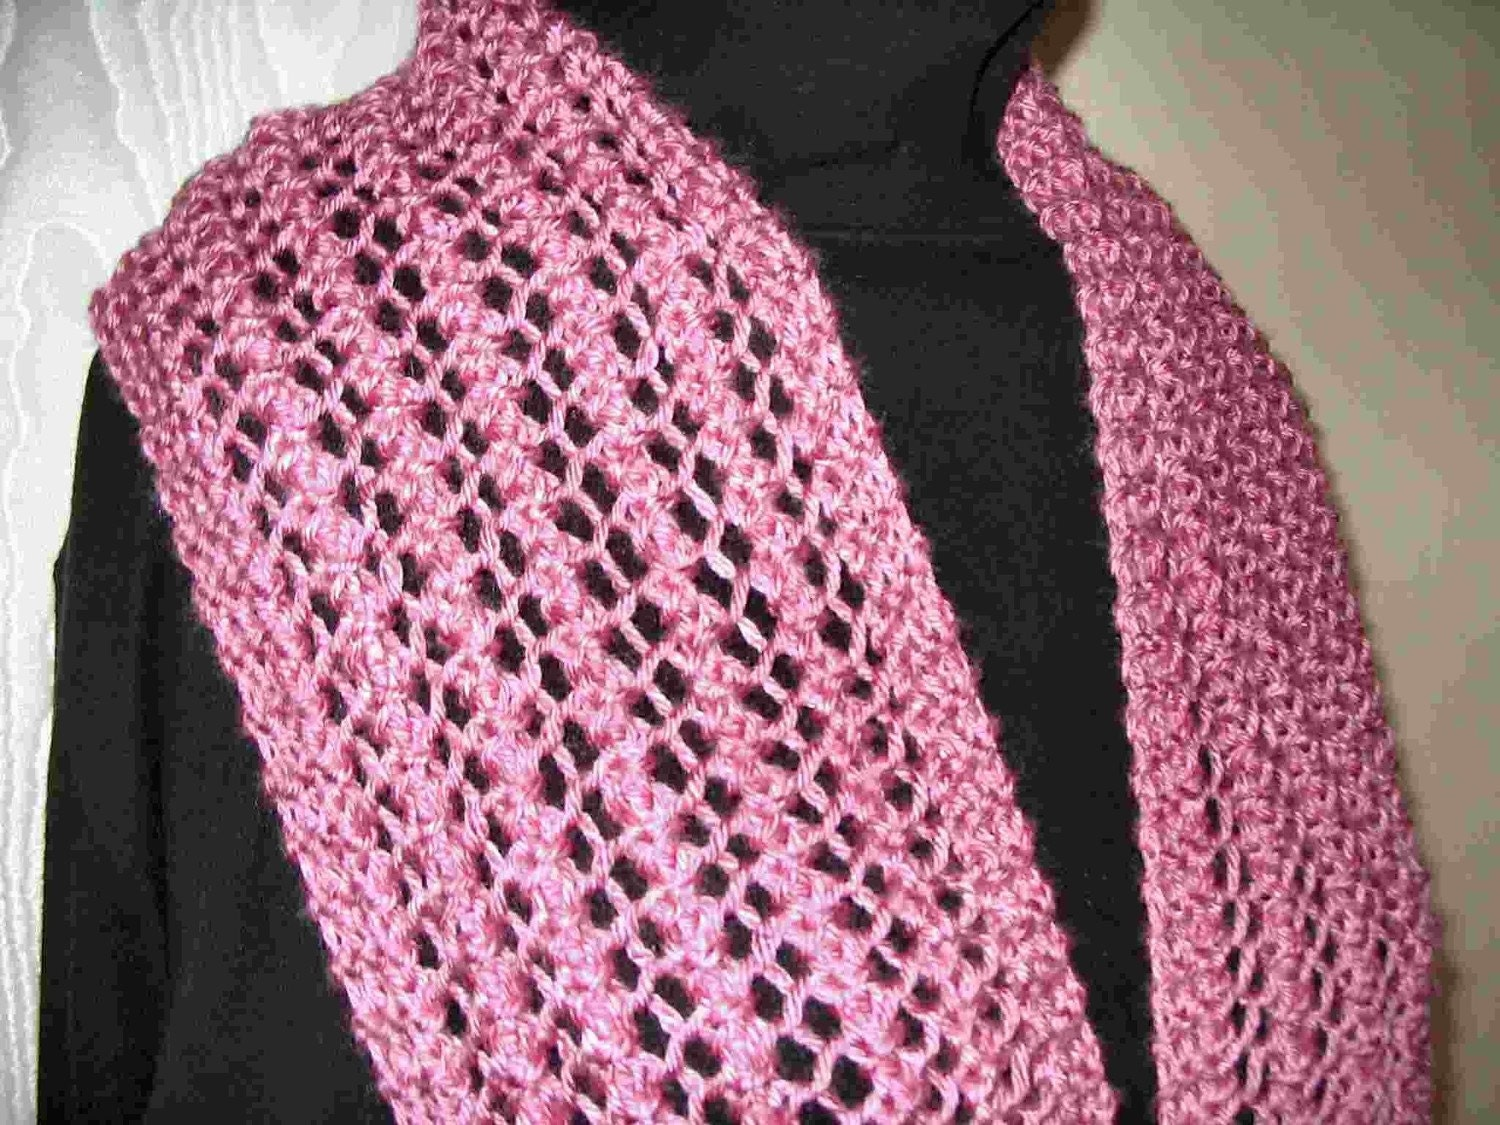 Easy Knitting Shawl Patterns - Browse Patterns